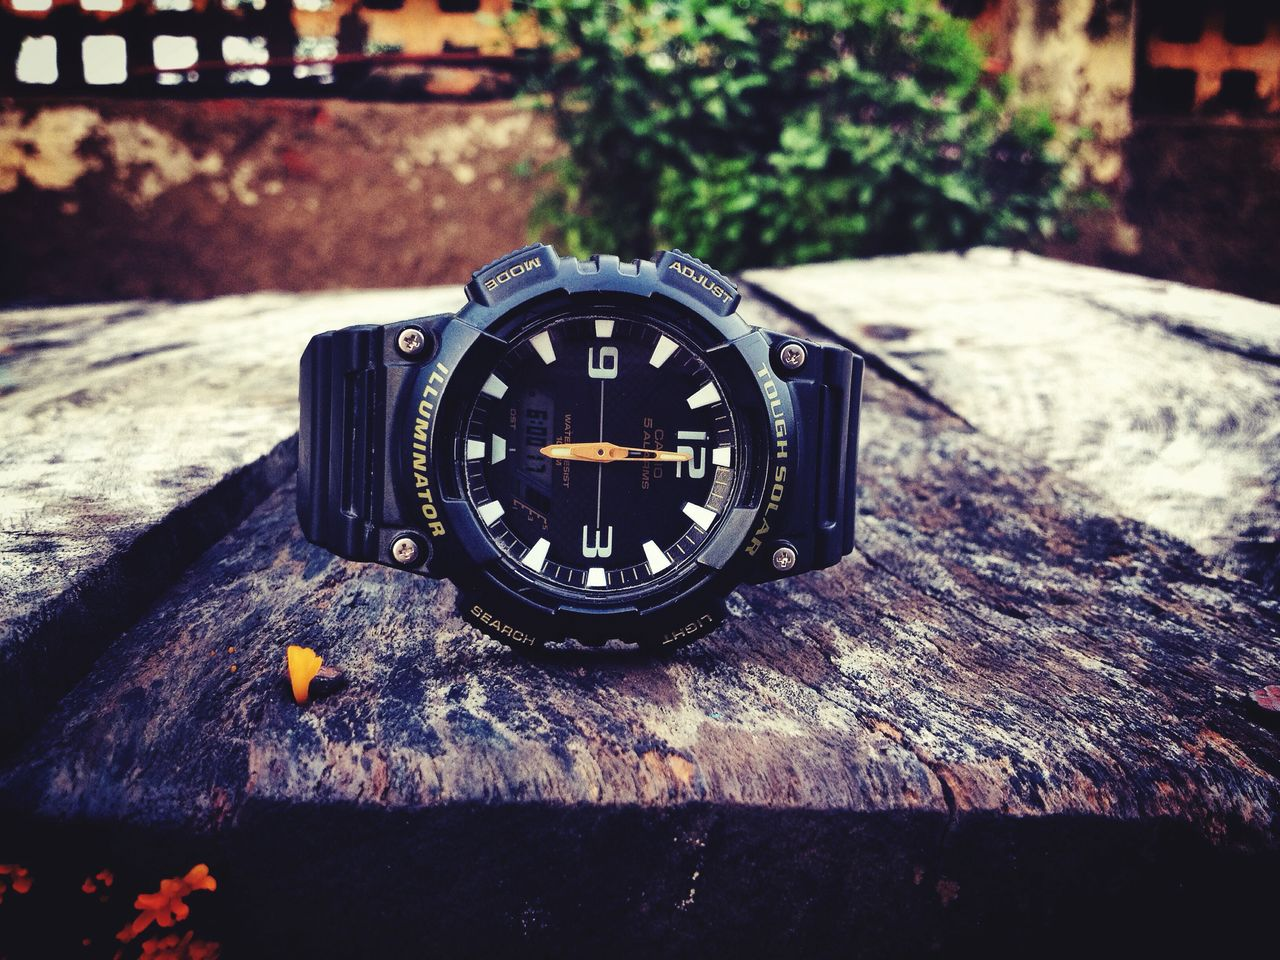 no people, time, focus on foreground, clock, table, close-up, day, outdoors, clock face